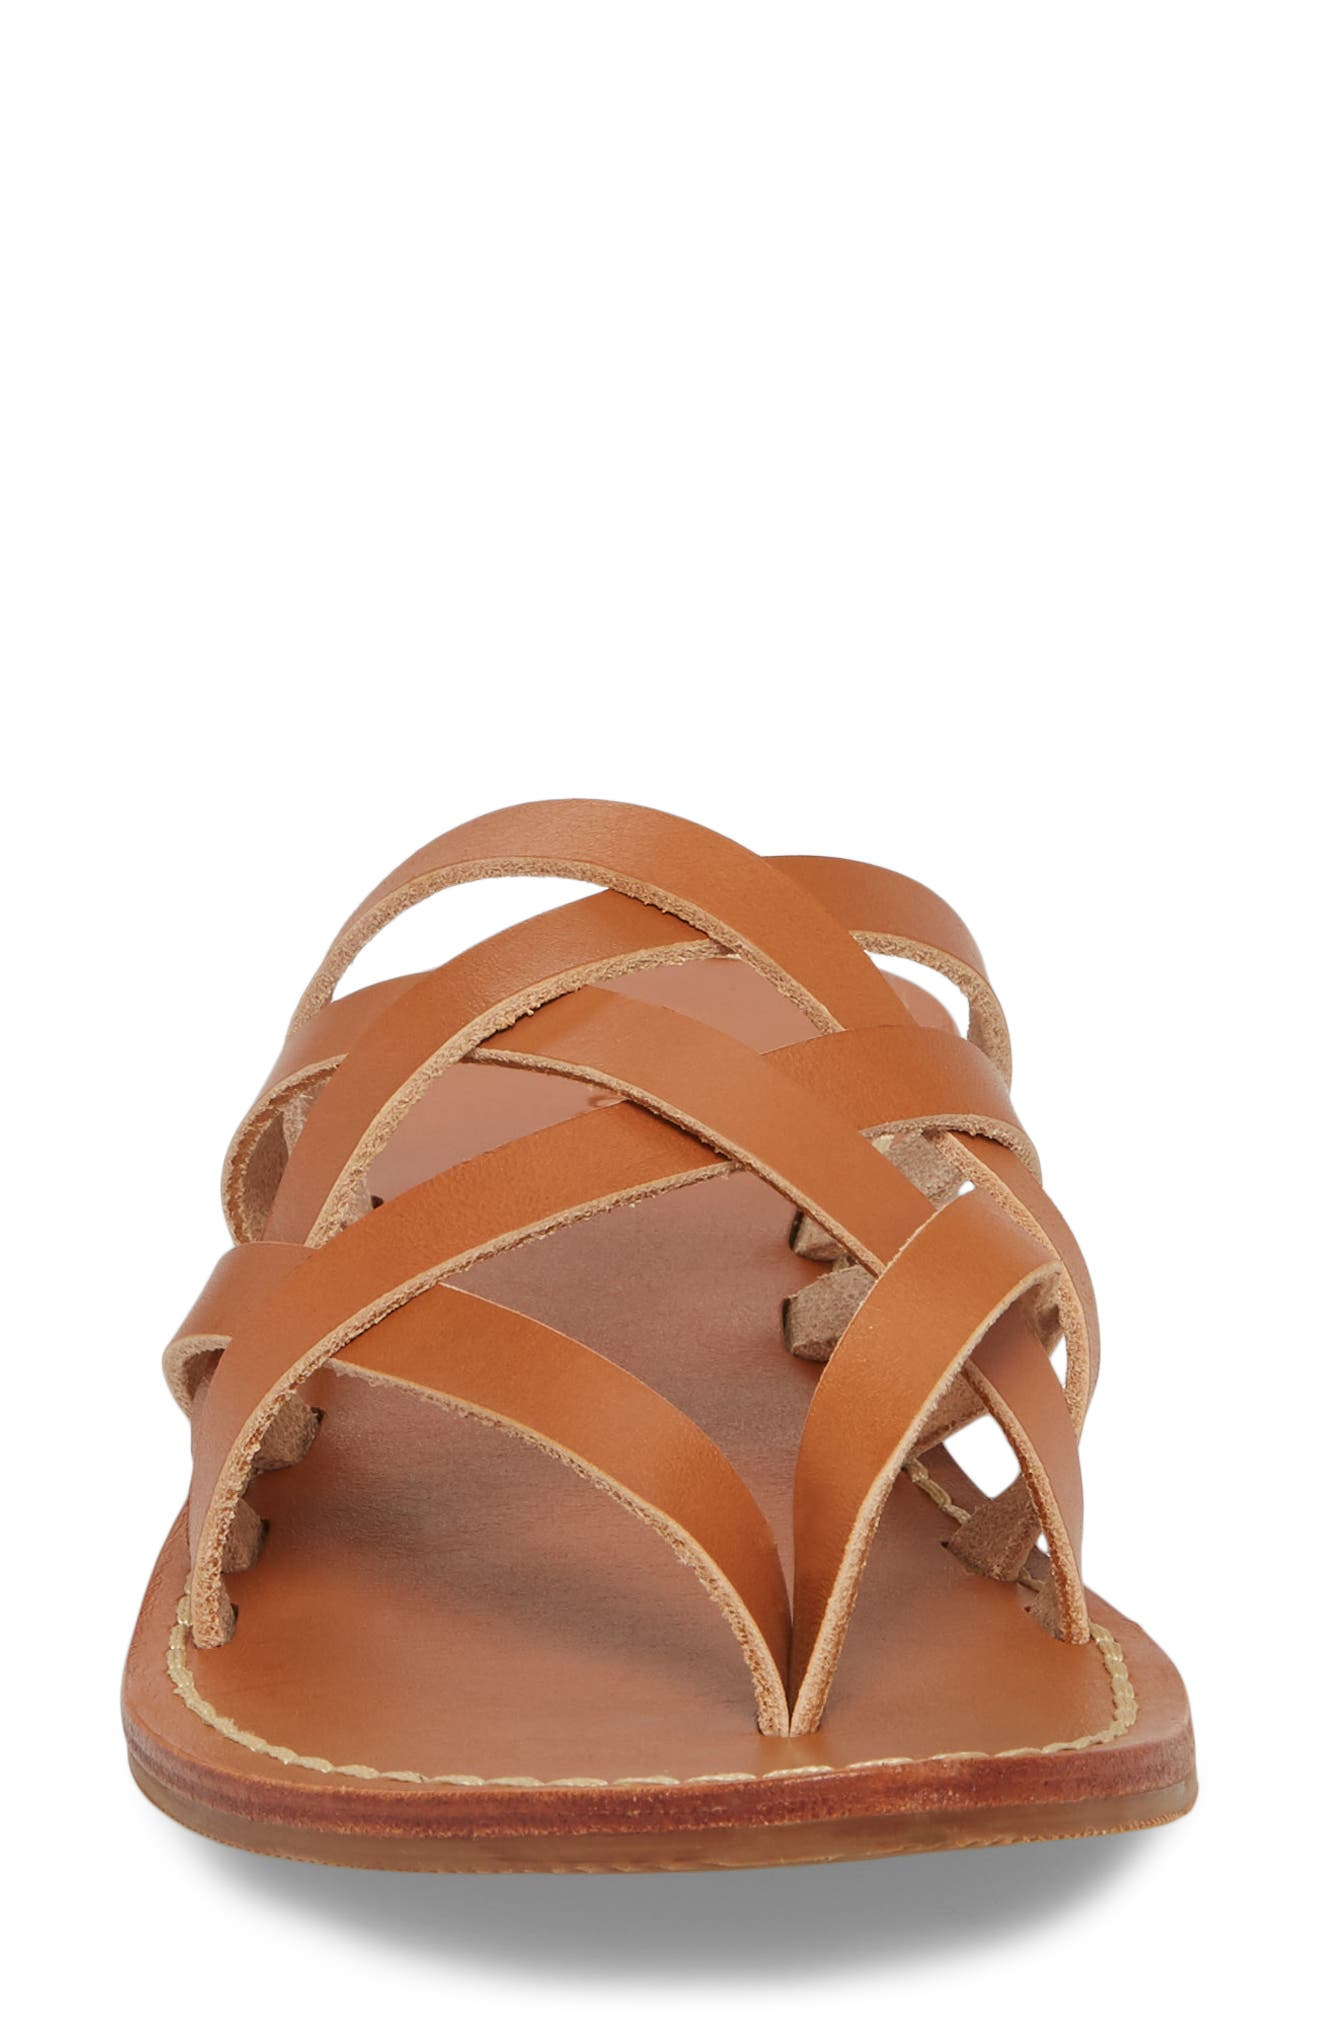 Strappy Sandal,                             Alternate thumbnail 4, color,                             Natural Leather